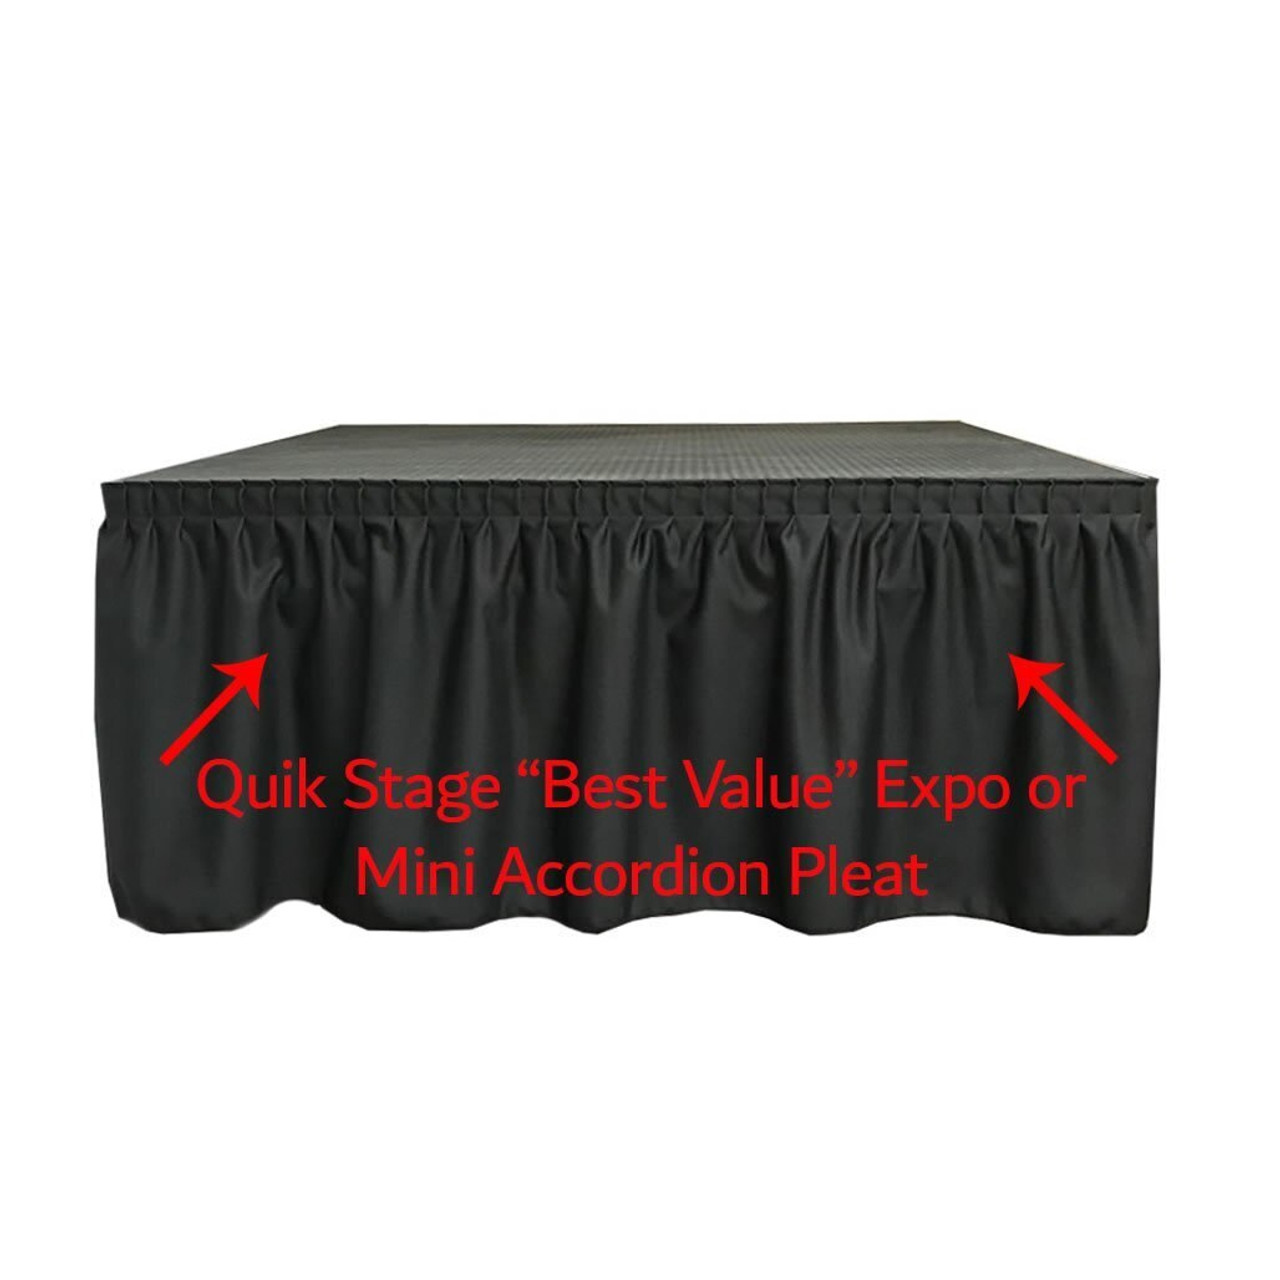 High Quality Quik Stage 4' x 12' High Portable Stage Package with Black Polyvinyl Non-Skid Surface. Additional Heights and Surfaces Available - Best Value Expo Pleat Stage Skirting